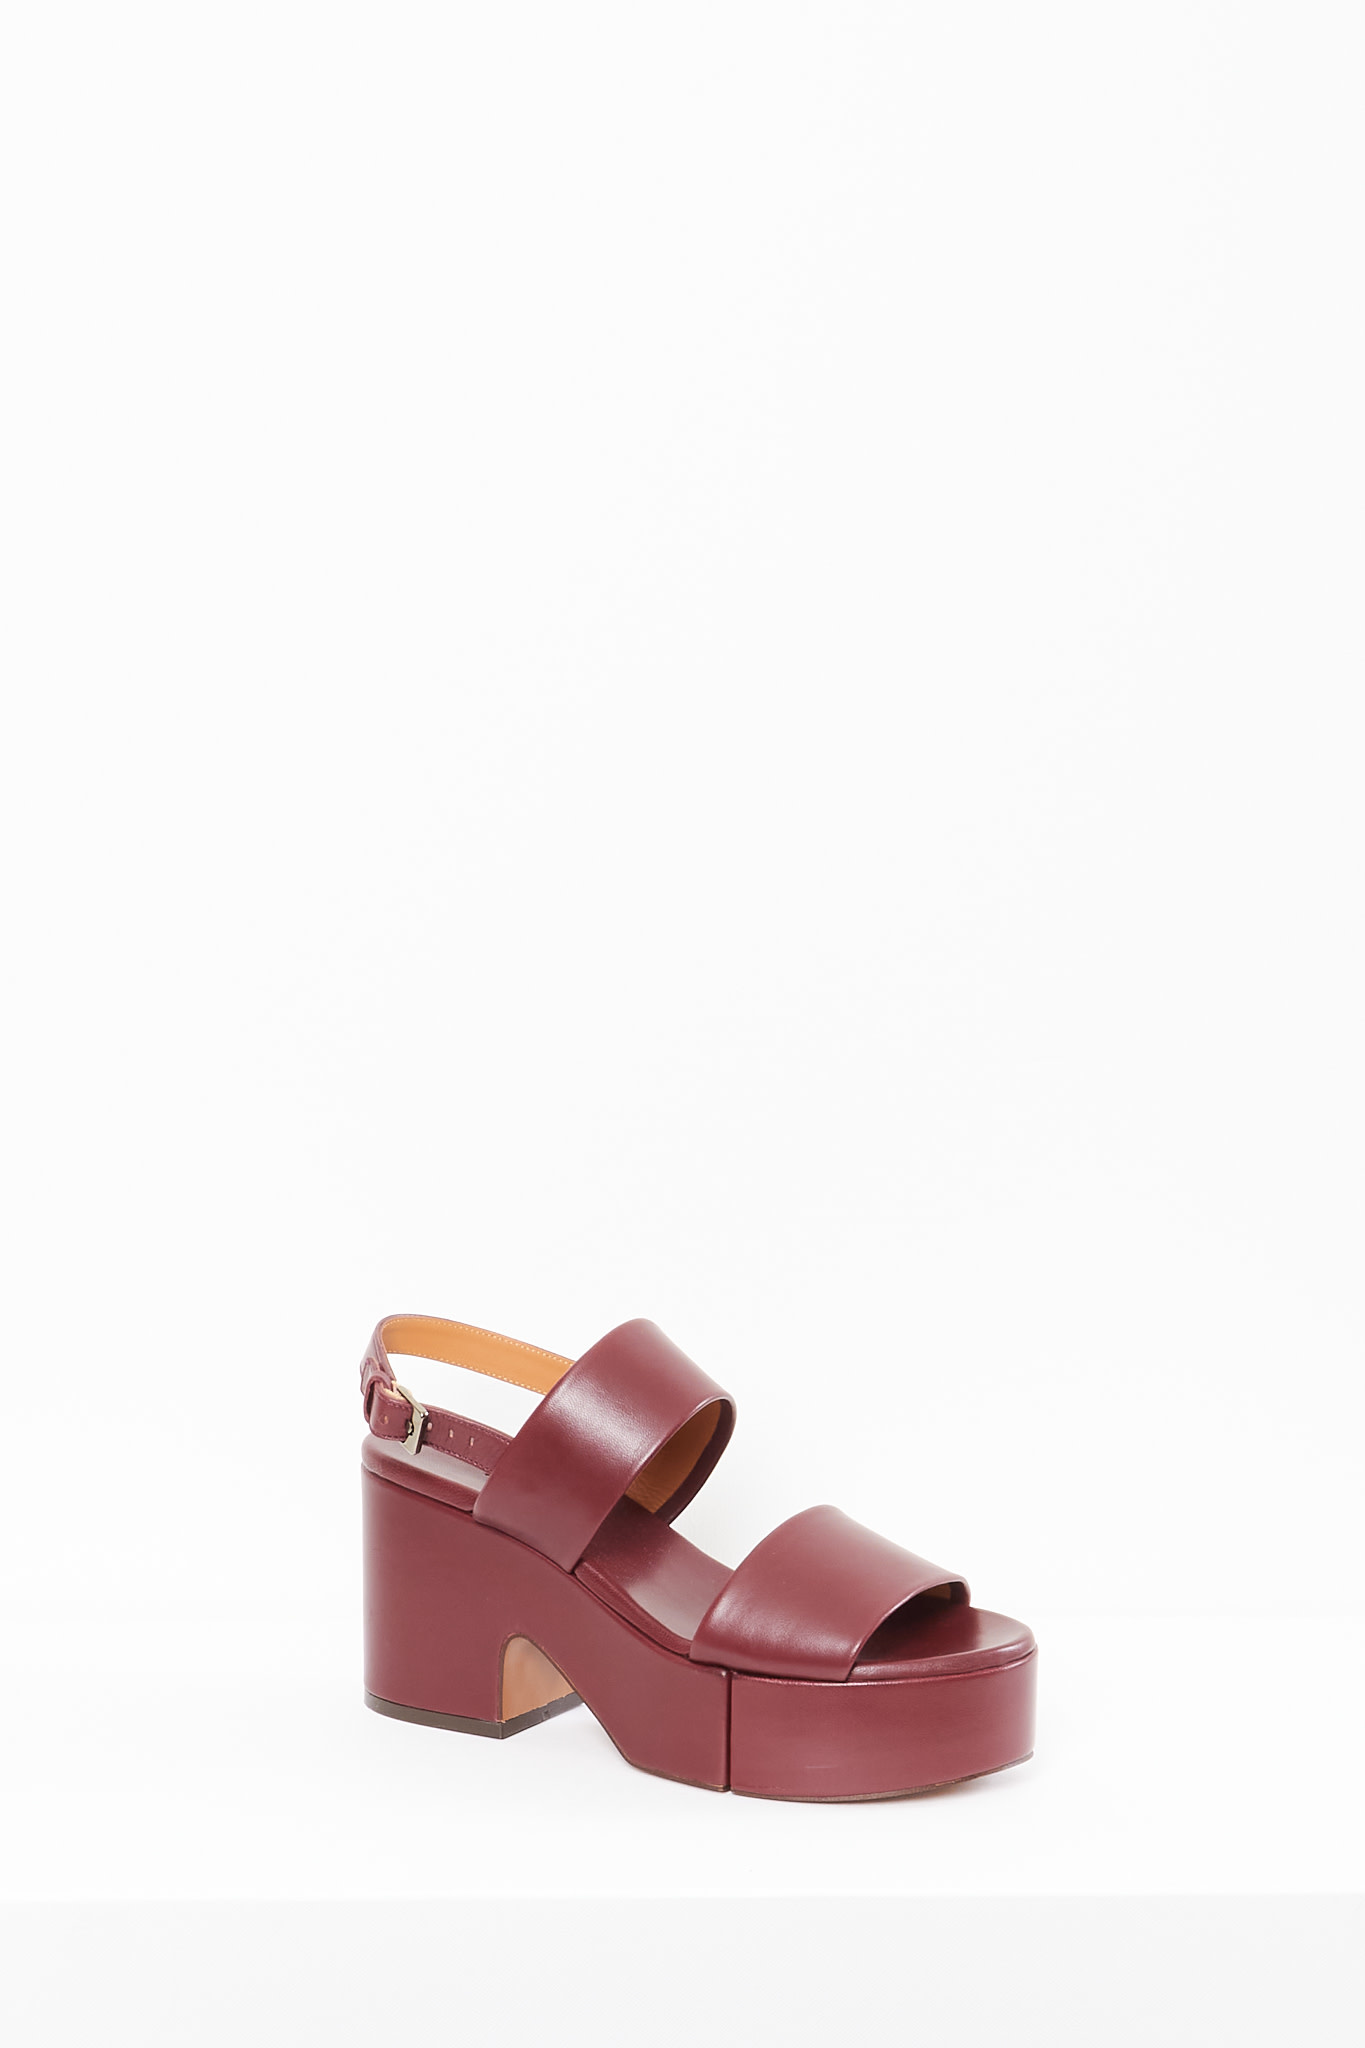 Clergerie Cora6 leather sandals